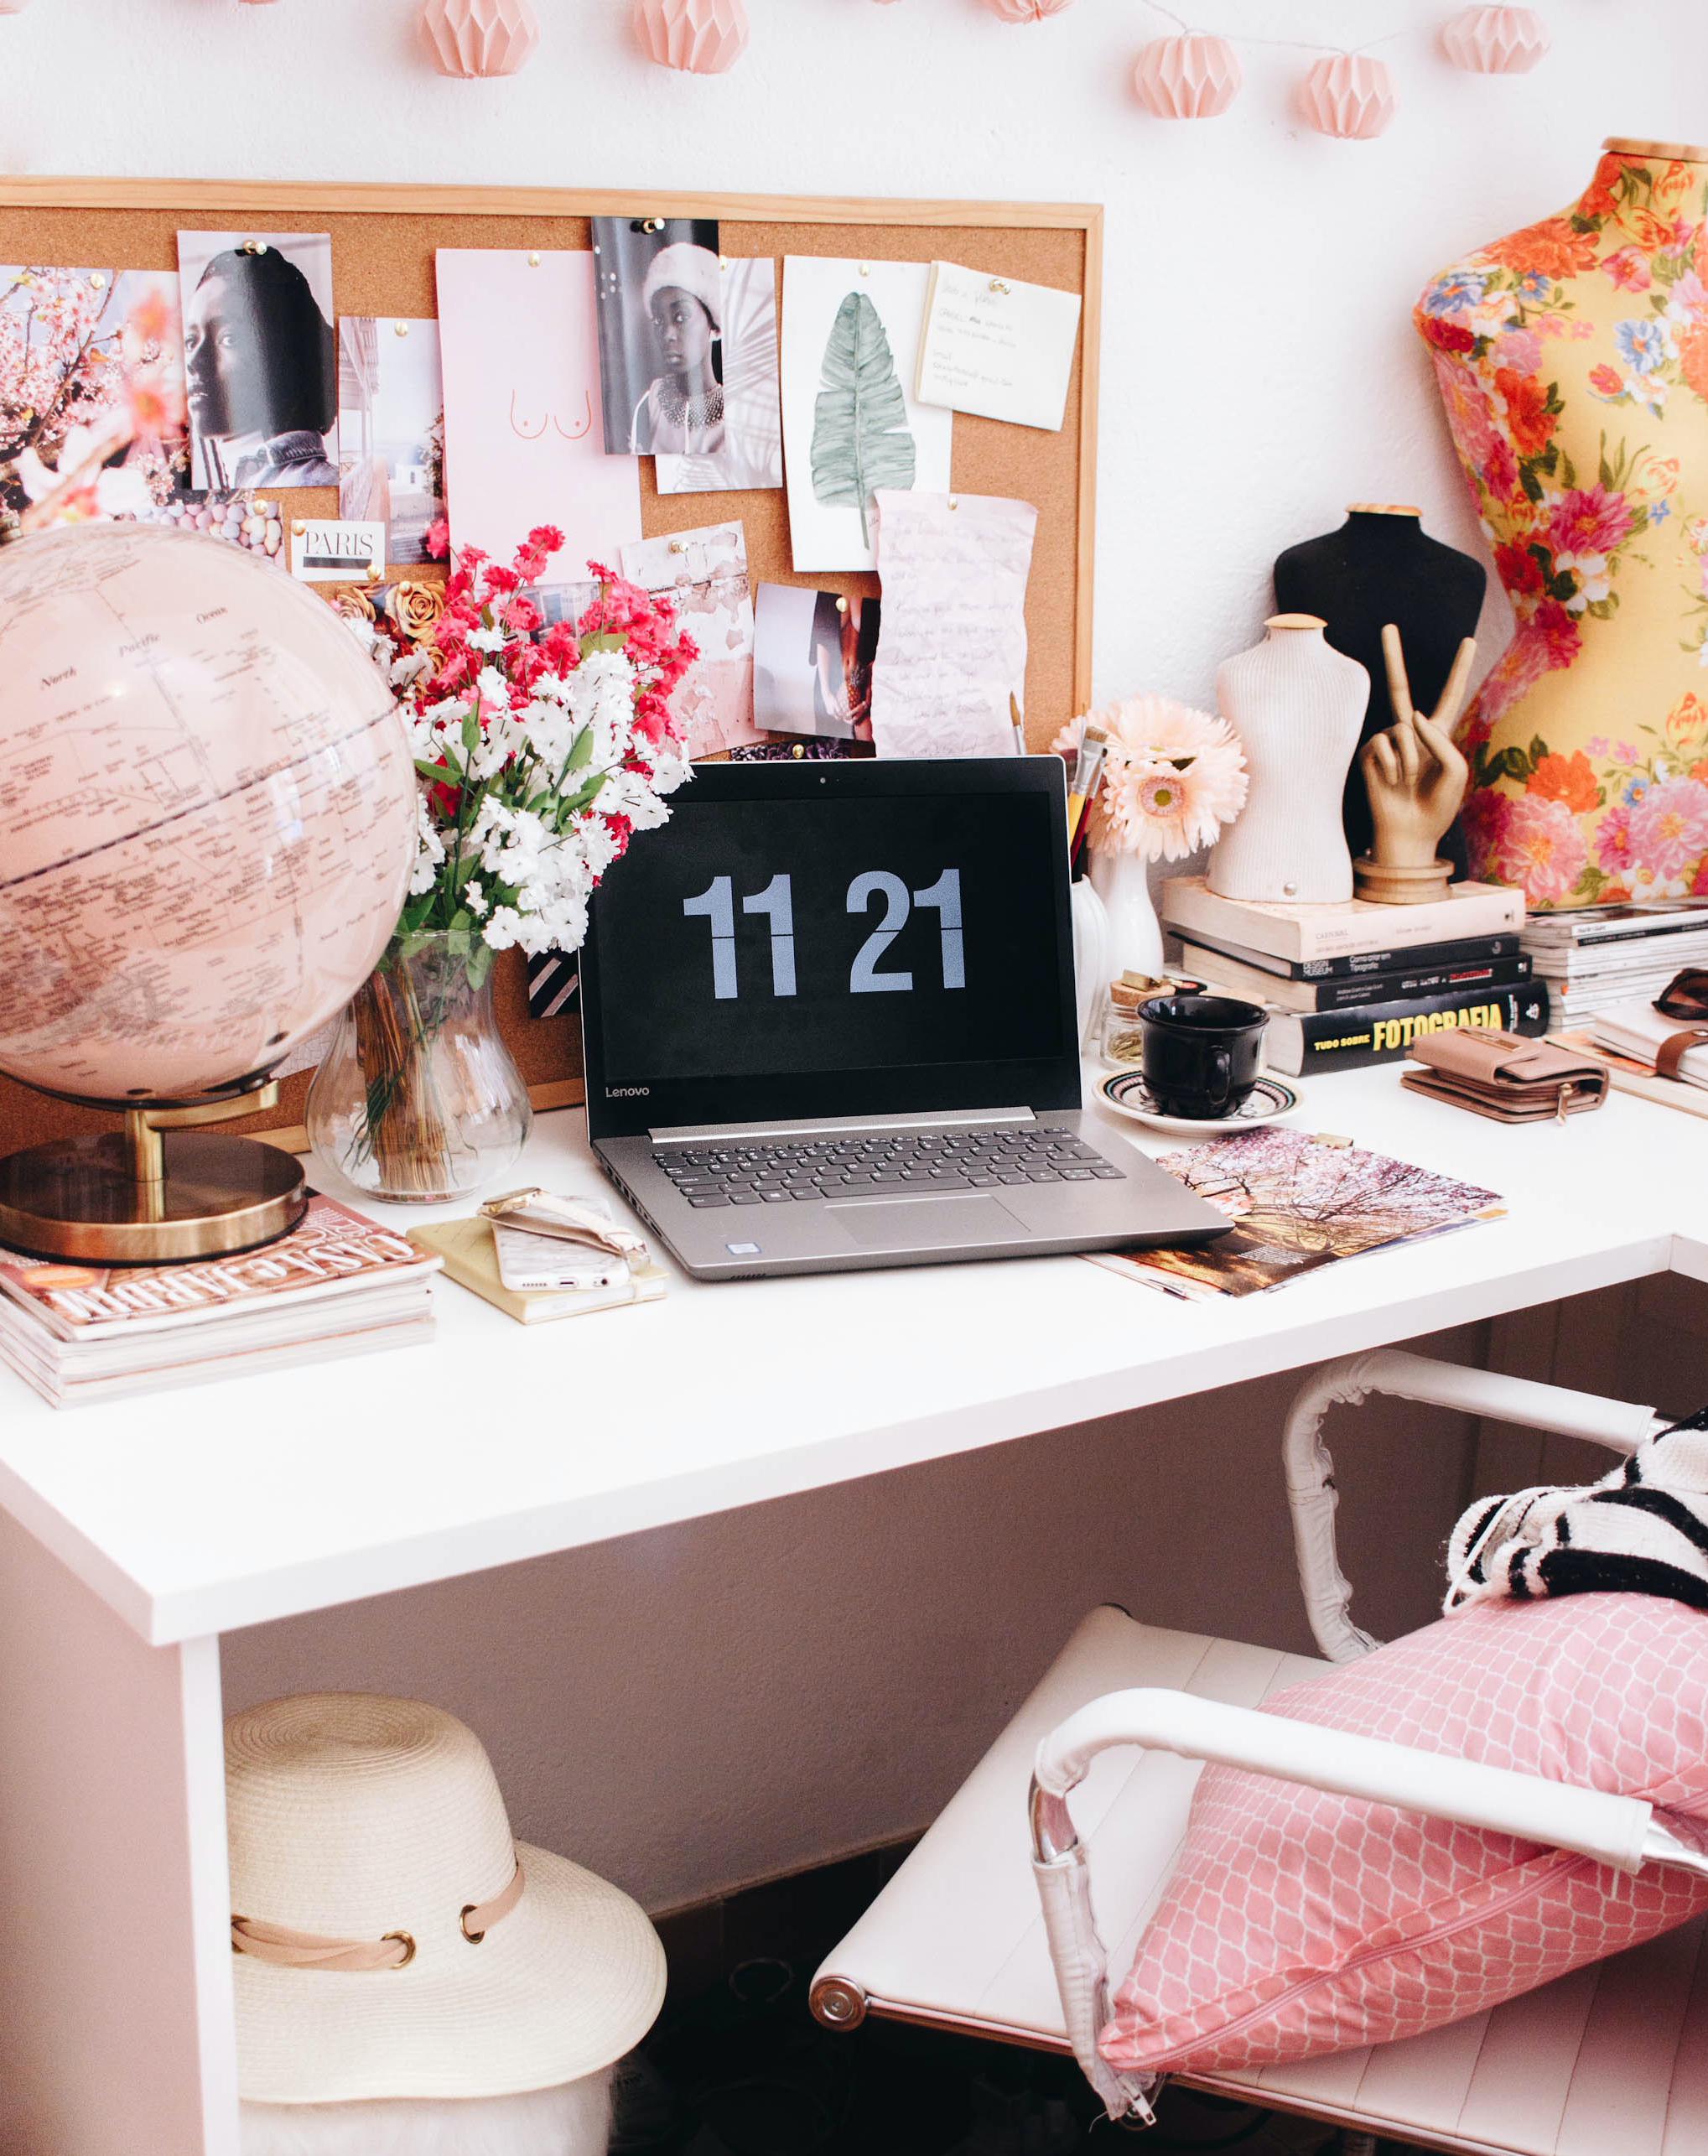 43 Home Office Ideas To Make Working From Home More Productive And Stylish Real Homes